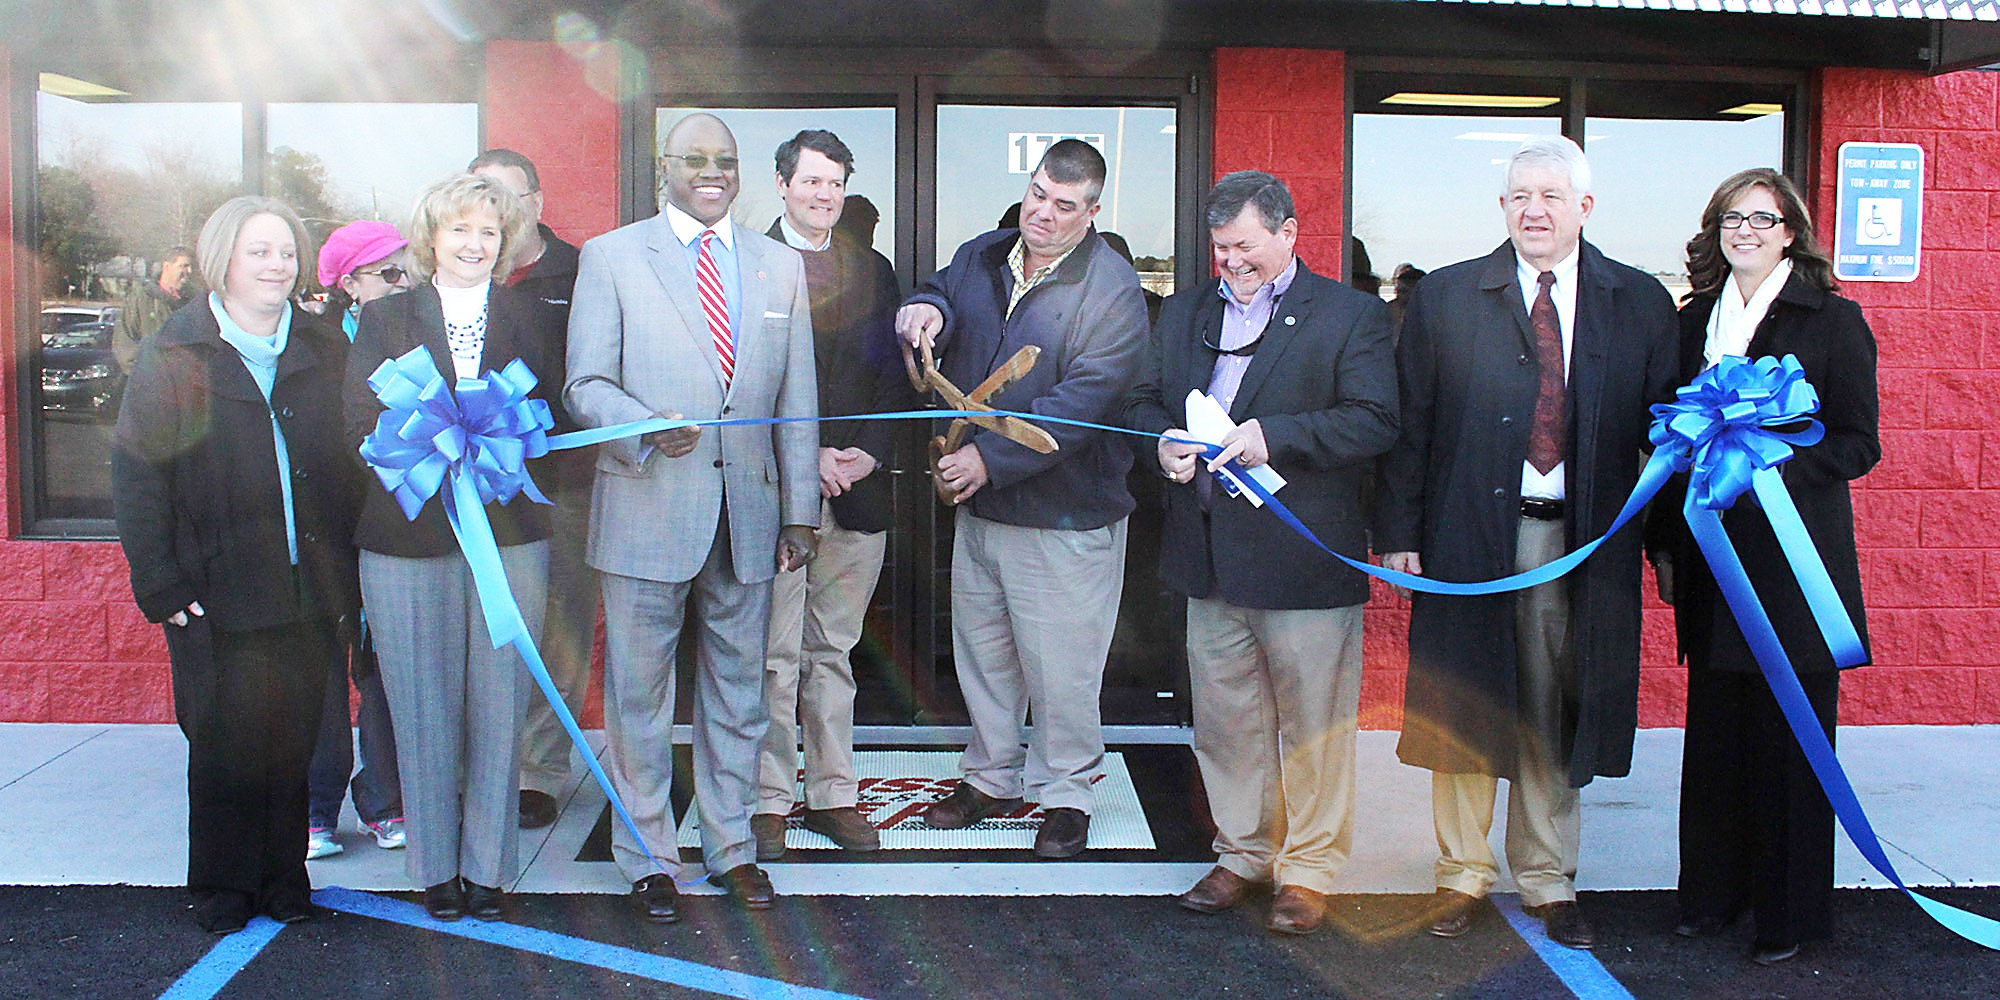 FUSSELL TIRE & SERVICES TIRE PROS CELEBRATES WITH RIBBON CUTTING